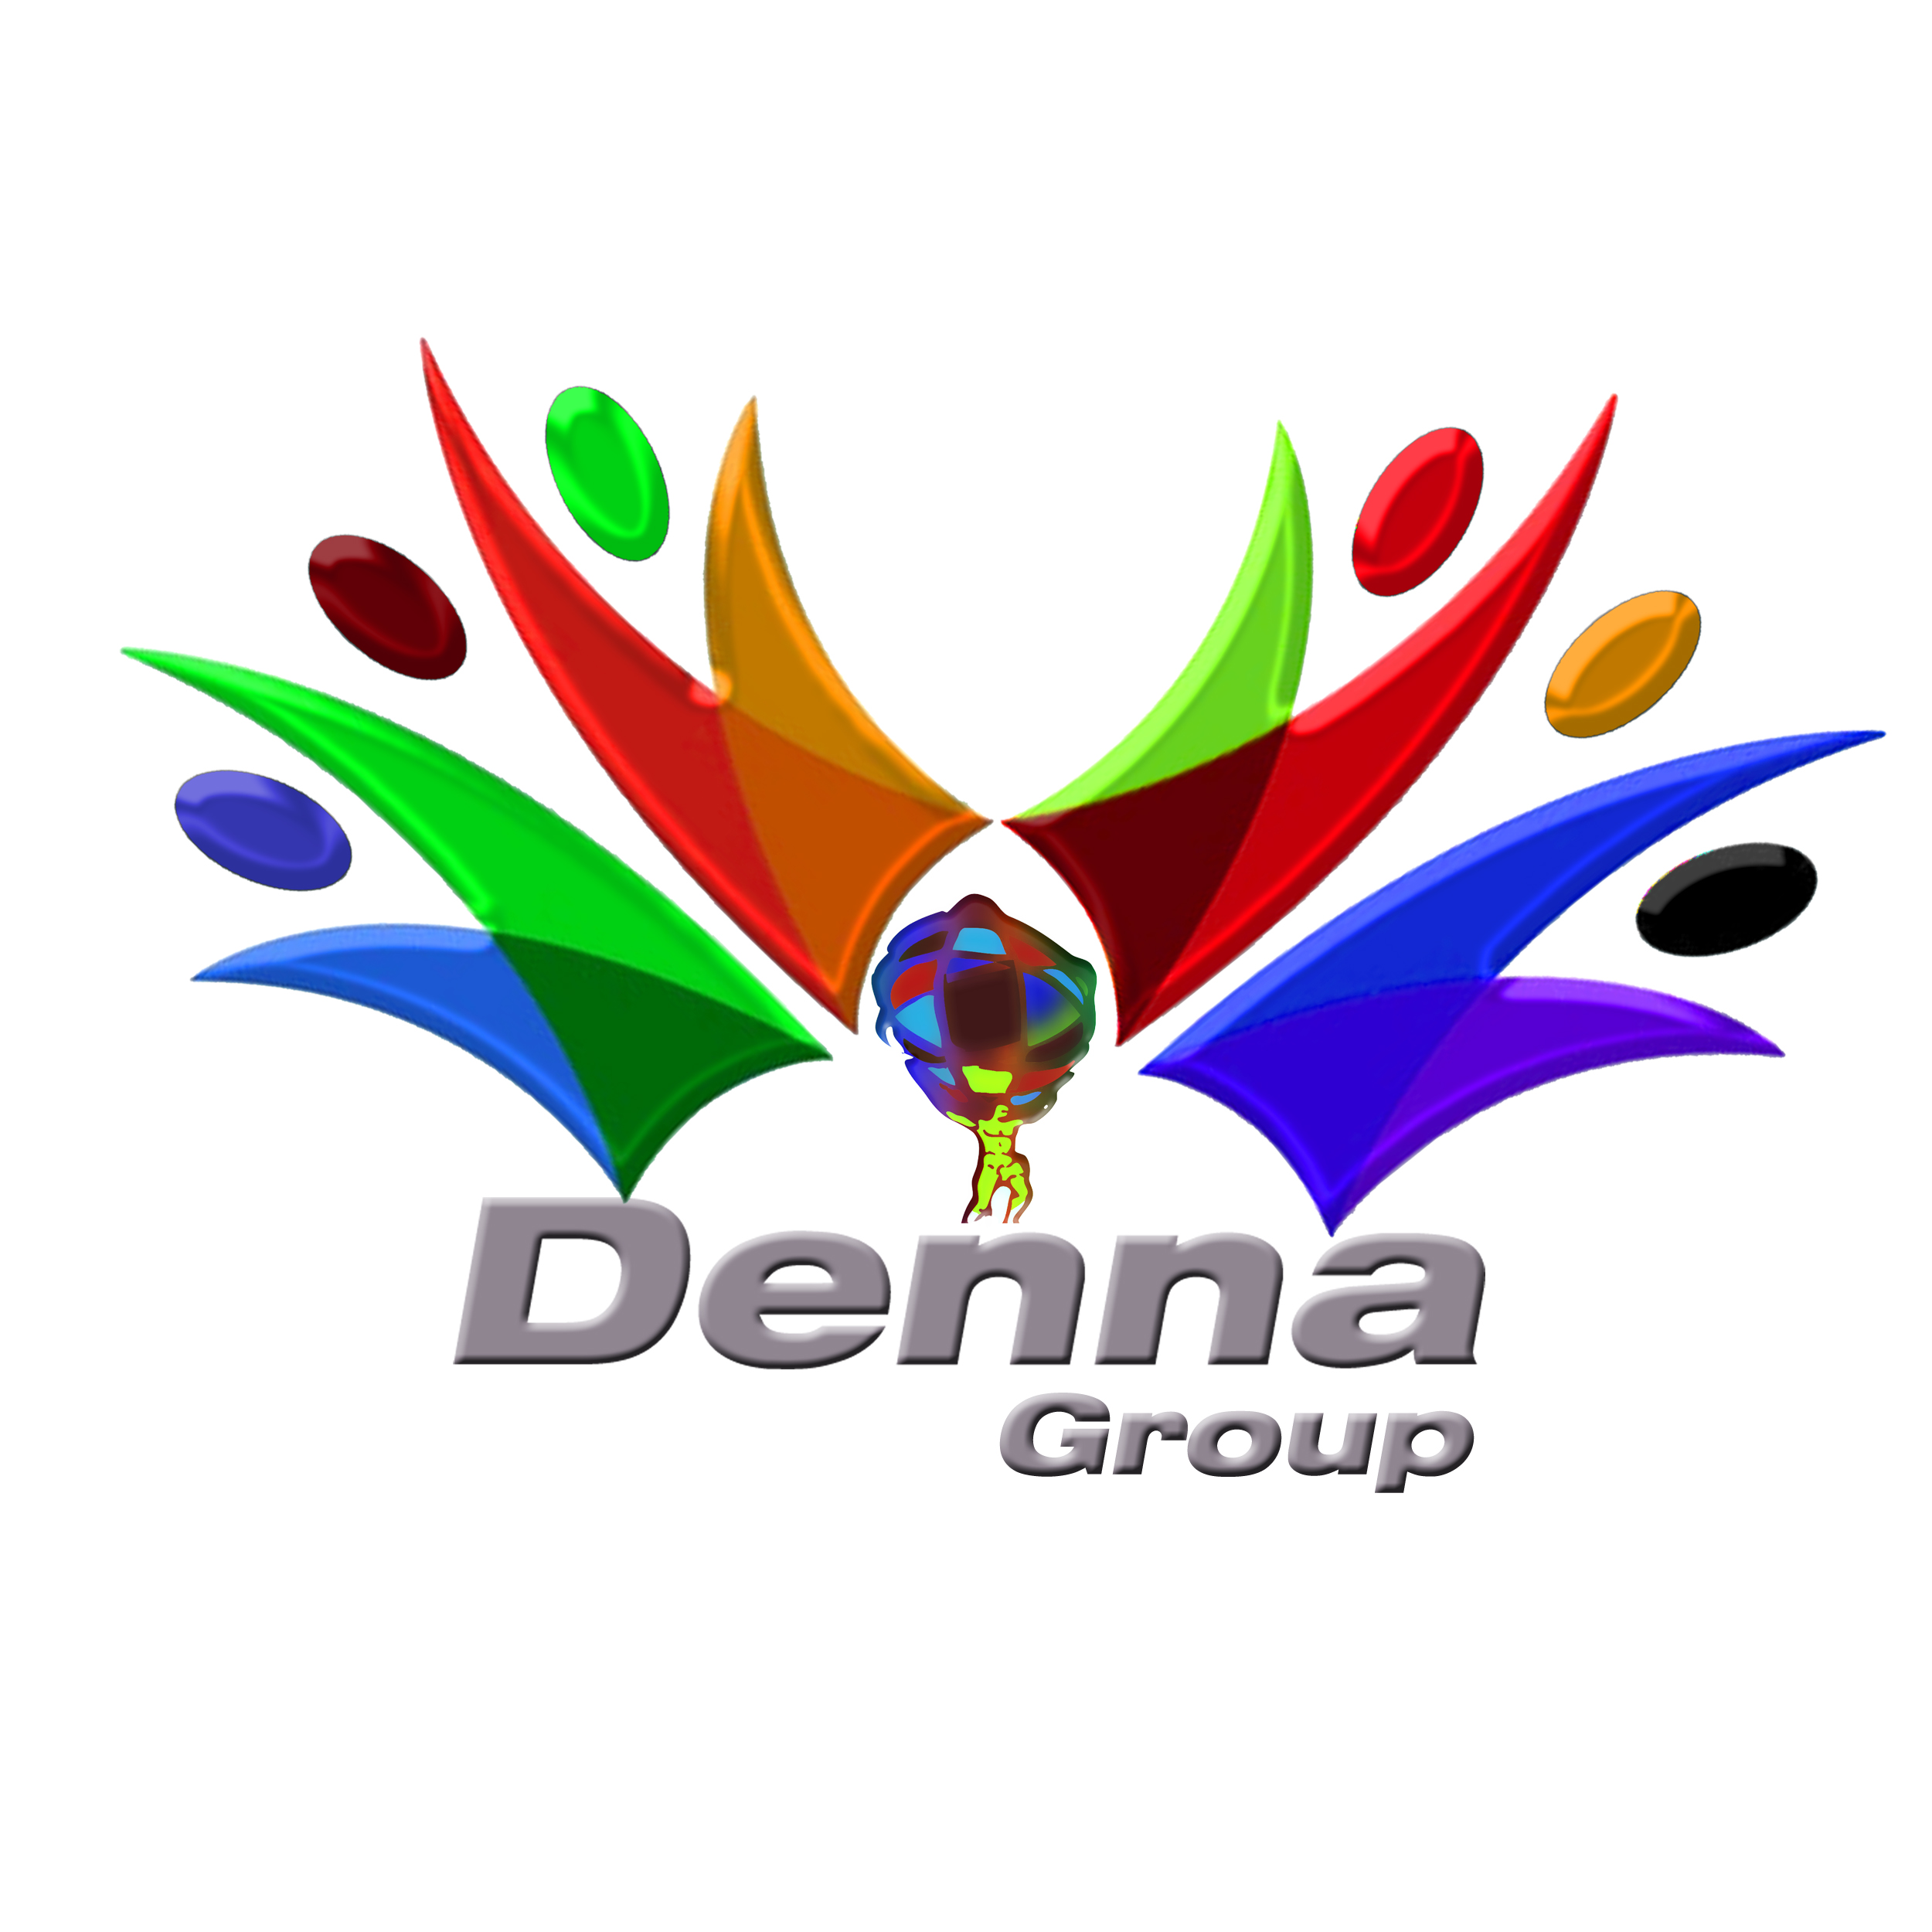 Logo Design by Roberto Sibbaluca - Entry No. 33 in the Logo Design Contest Denna Group Logo Design.